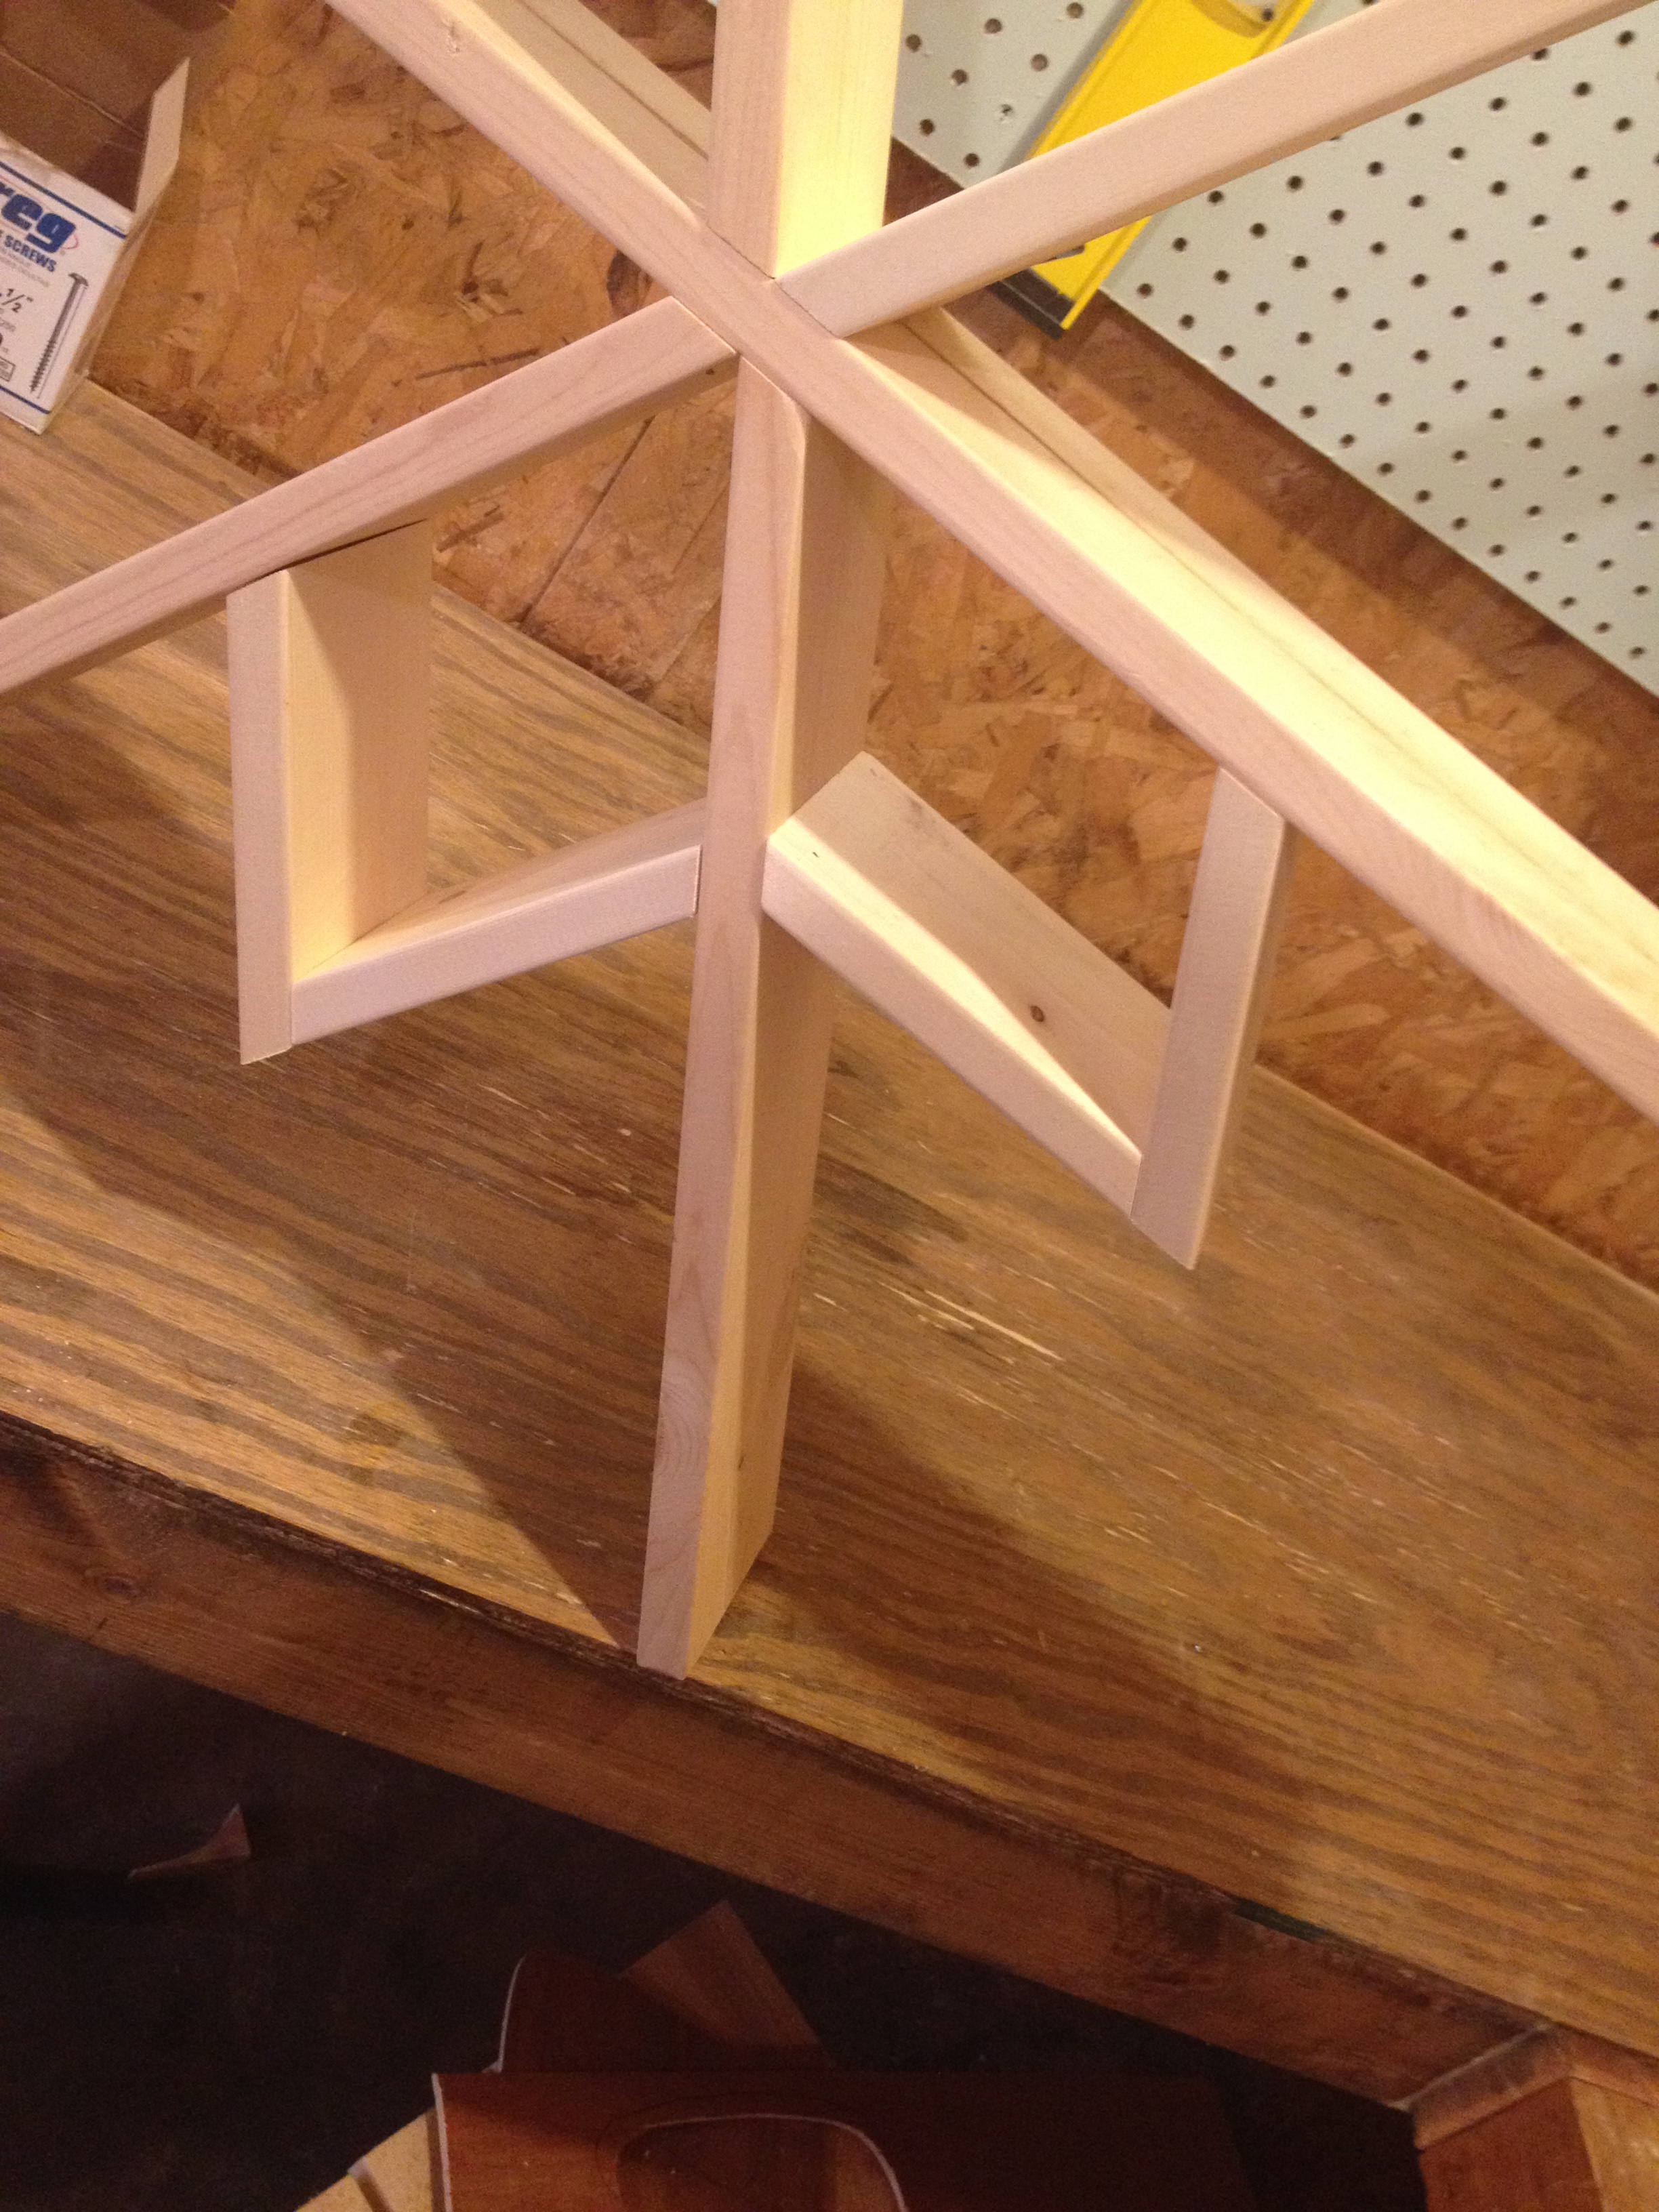 Close up of shelf triangles being installed onto shelf frame